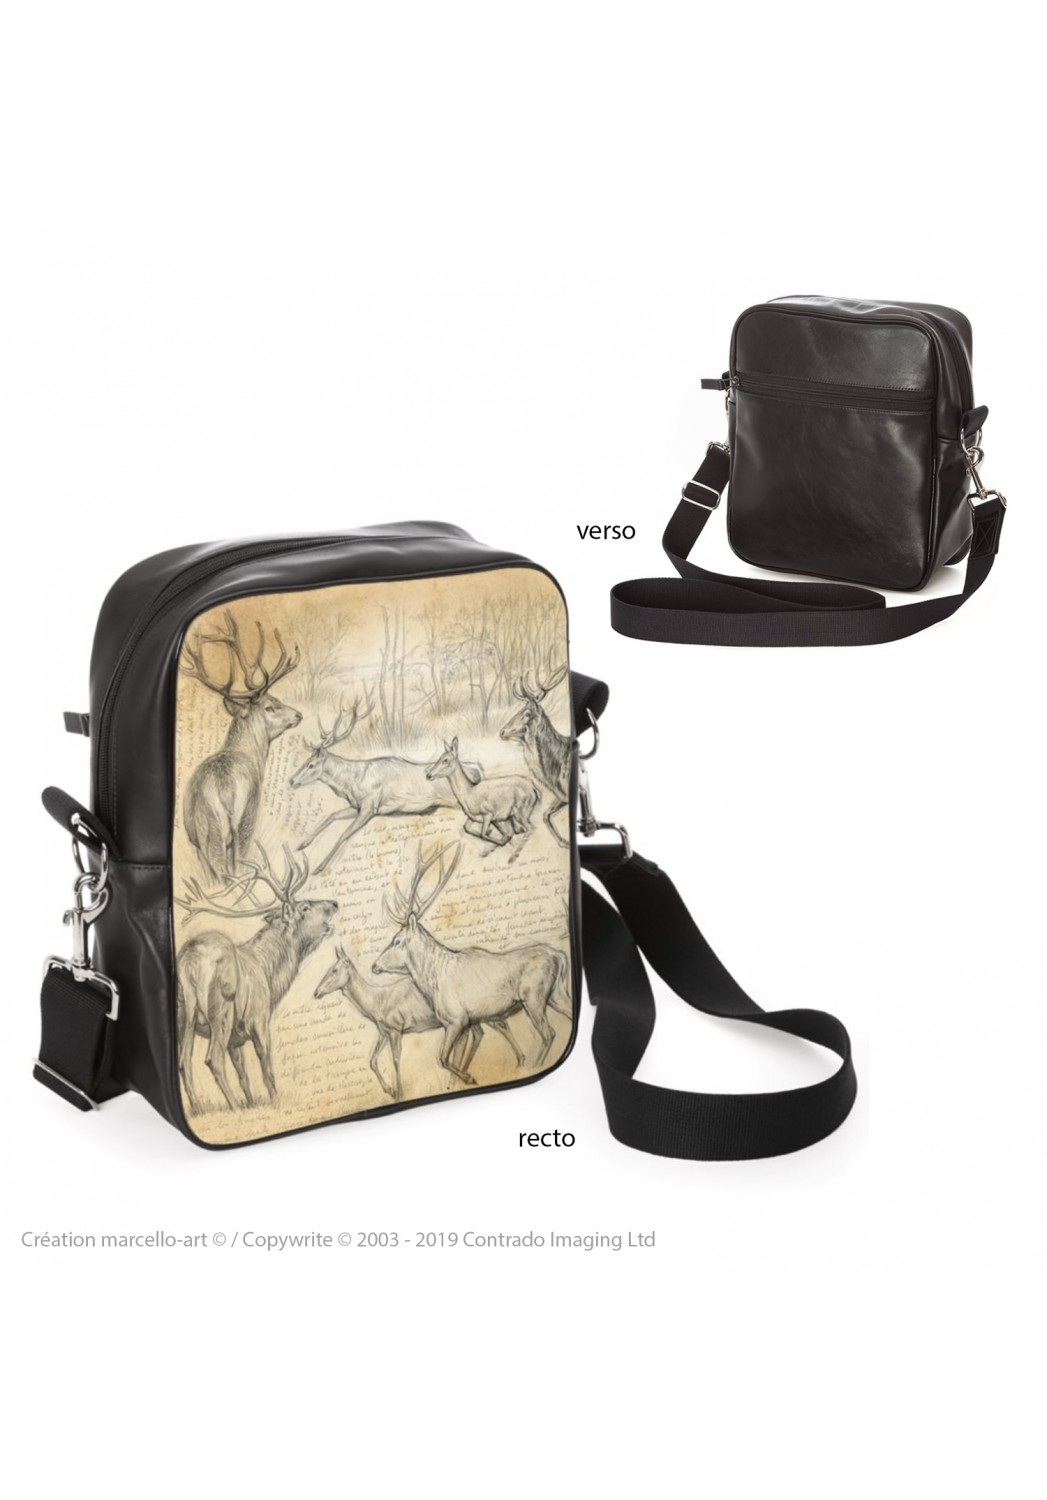 Marcello-art: Fashion accessory Bag 271 red deer